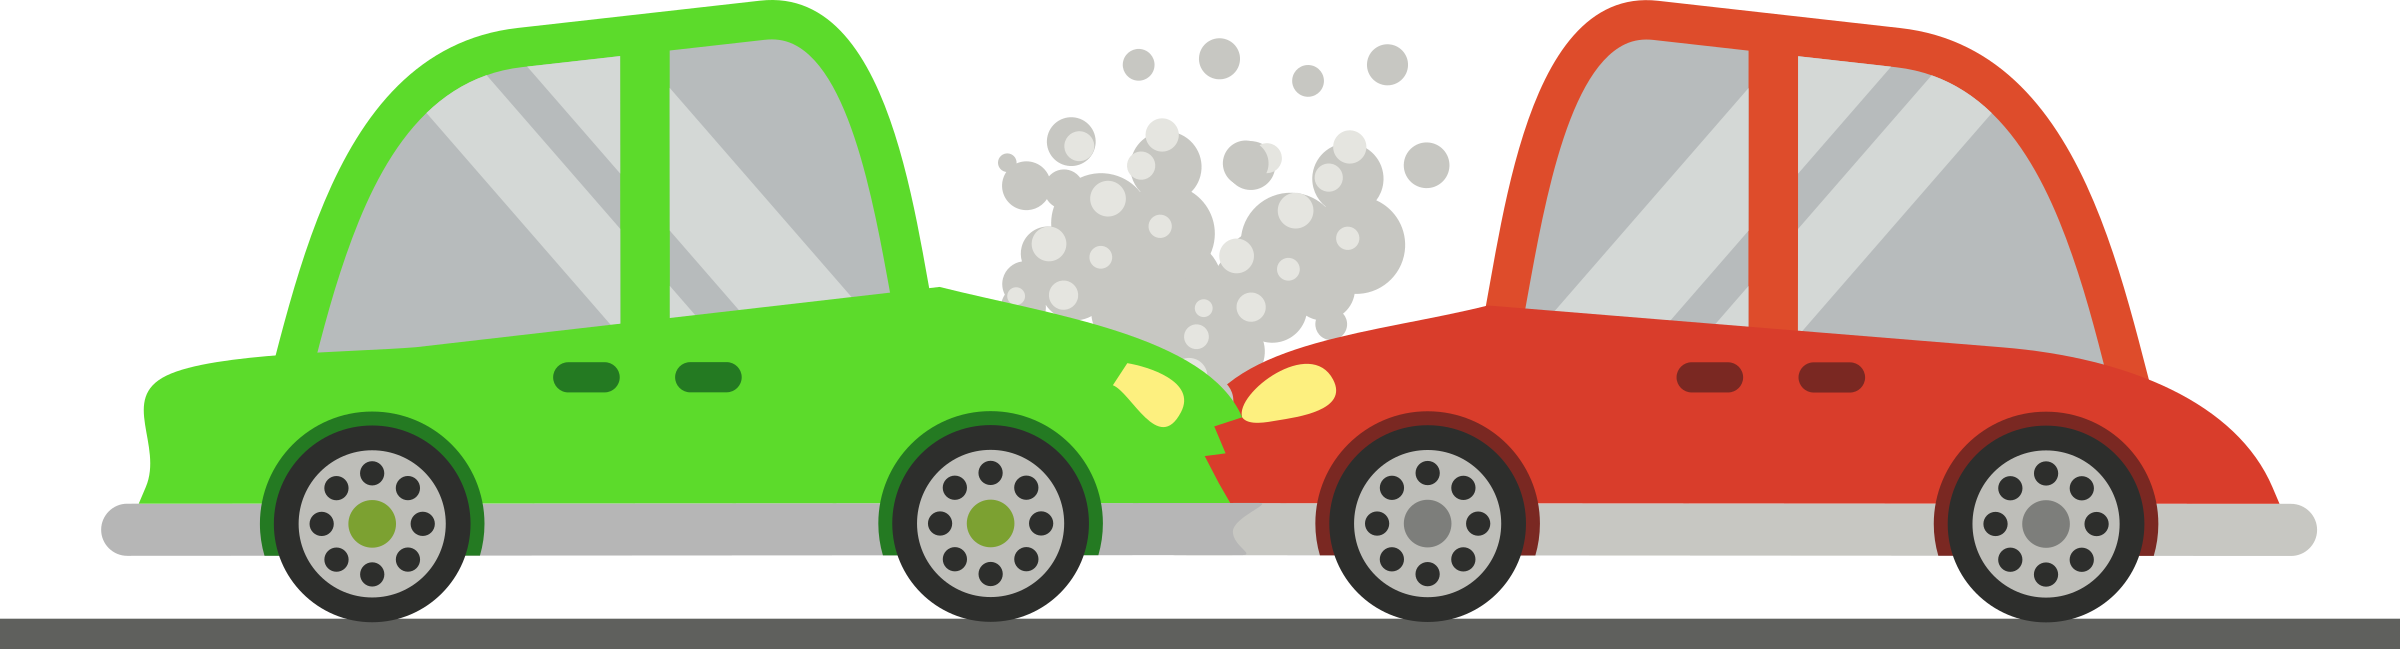 Car with smoke clipart jpg freeuse download Clipart - Two Cars Crash jpg freeuse download